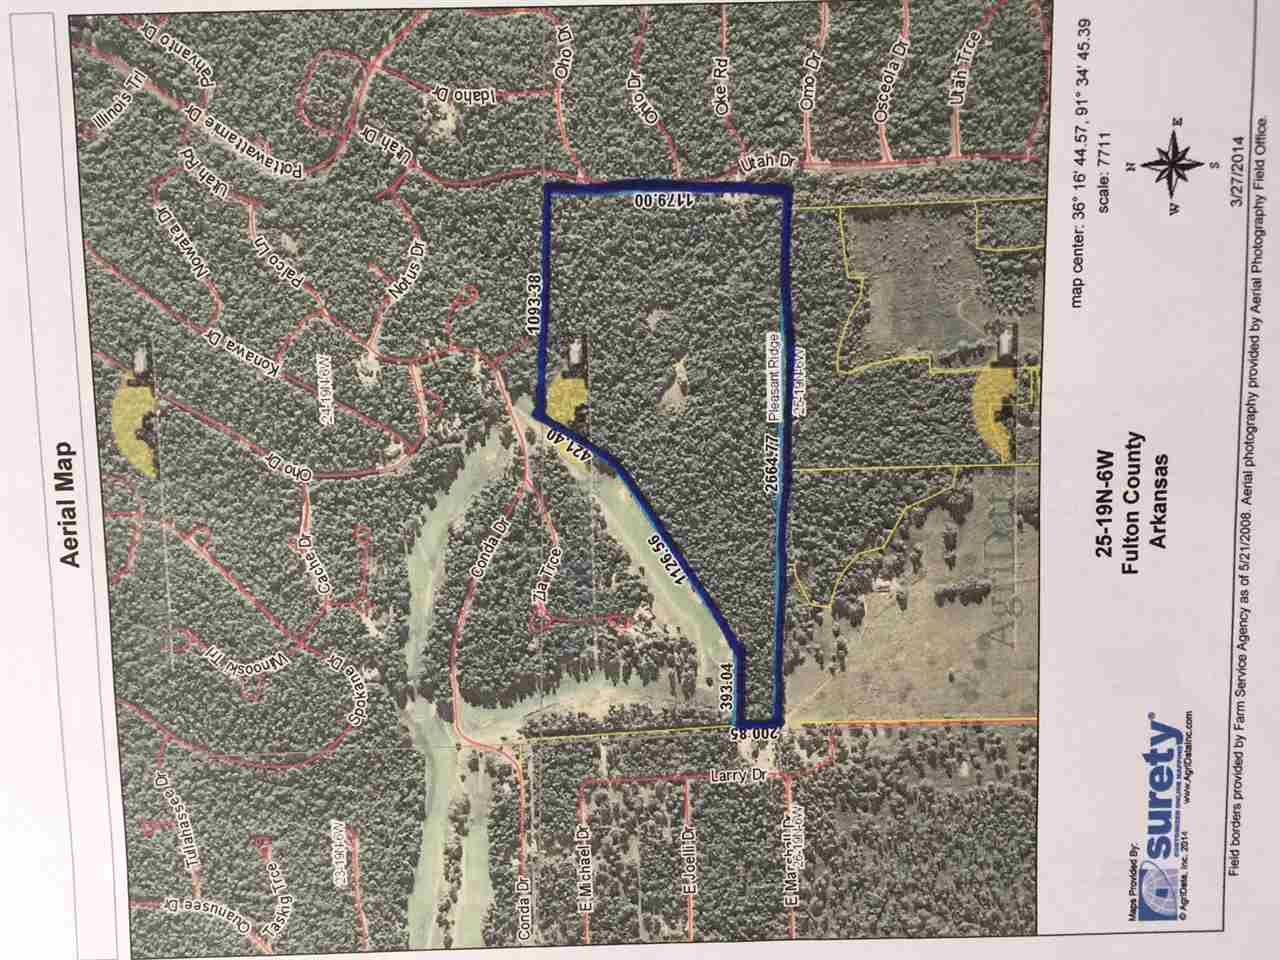 For sale is a premiere wooded track of land that runs the length of the fairway on the 5th hole at Cherokee Village South Golf Course. This property has unlimited potential! Build your dream home in the middle of the rolling forest  and enjoy an urban whitetail deer hunt on a fall morning. After bagging a mature buck with your bow, ride your golf cart to the course for an afternoon round of golf.  Not the outdoors type? This property is positioned for countless development opportunities. The pr